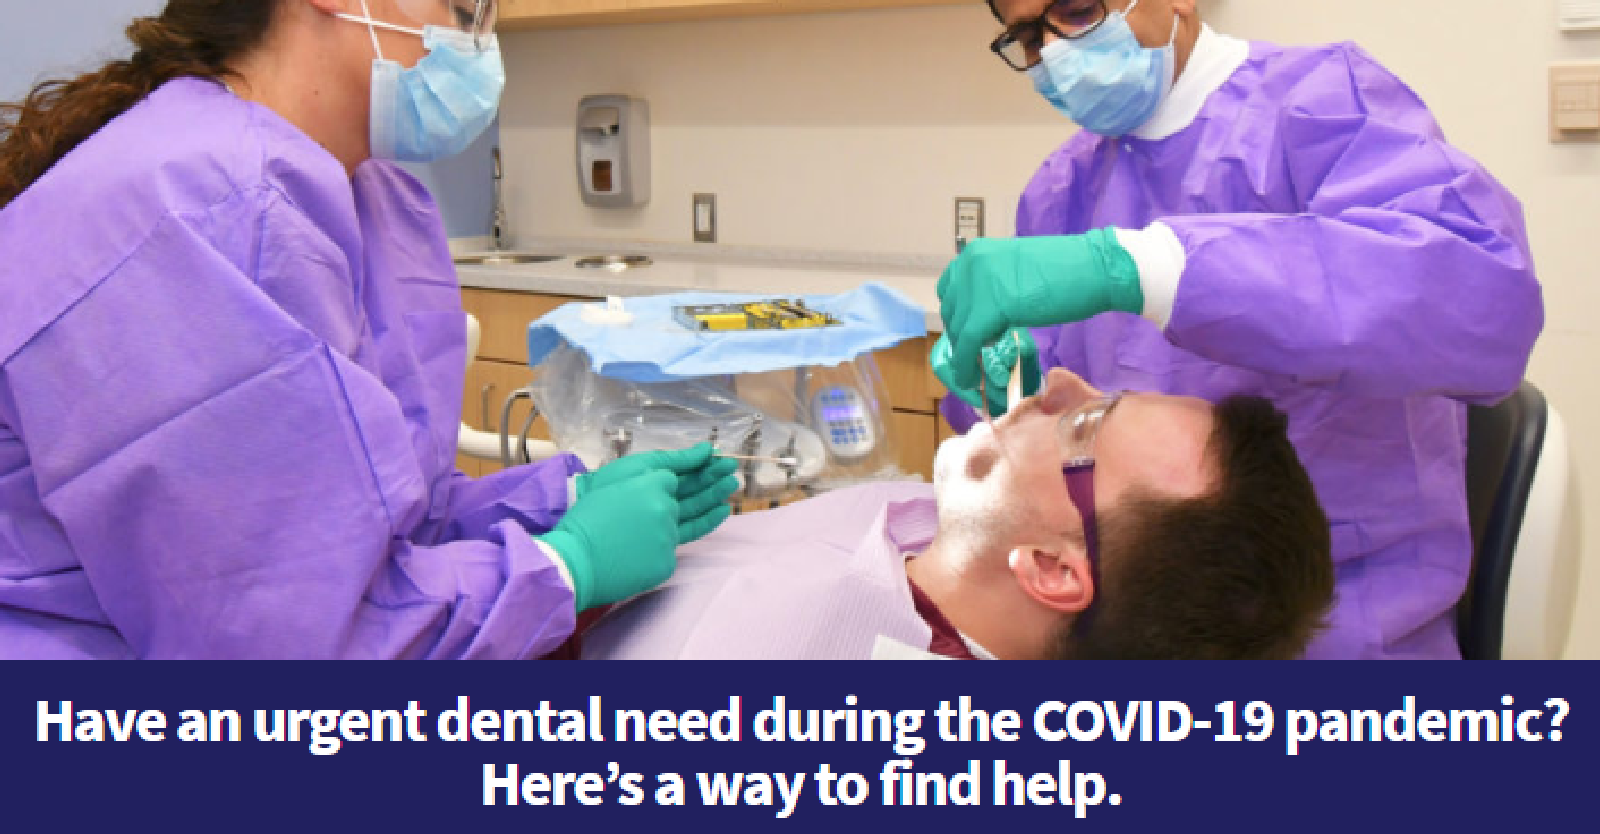 Have an Urgent Dental Need During the COVID-19 Pandemic? Here's a Way to Find Help